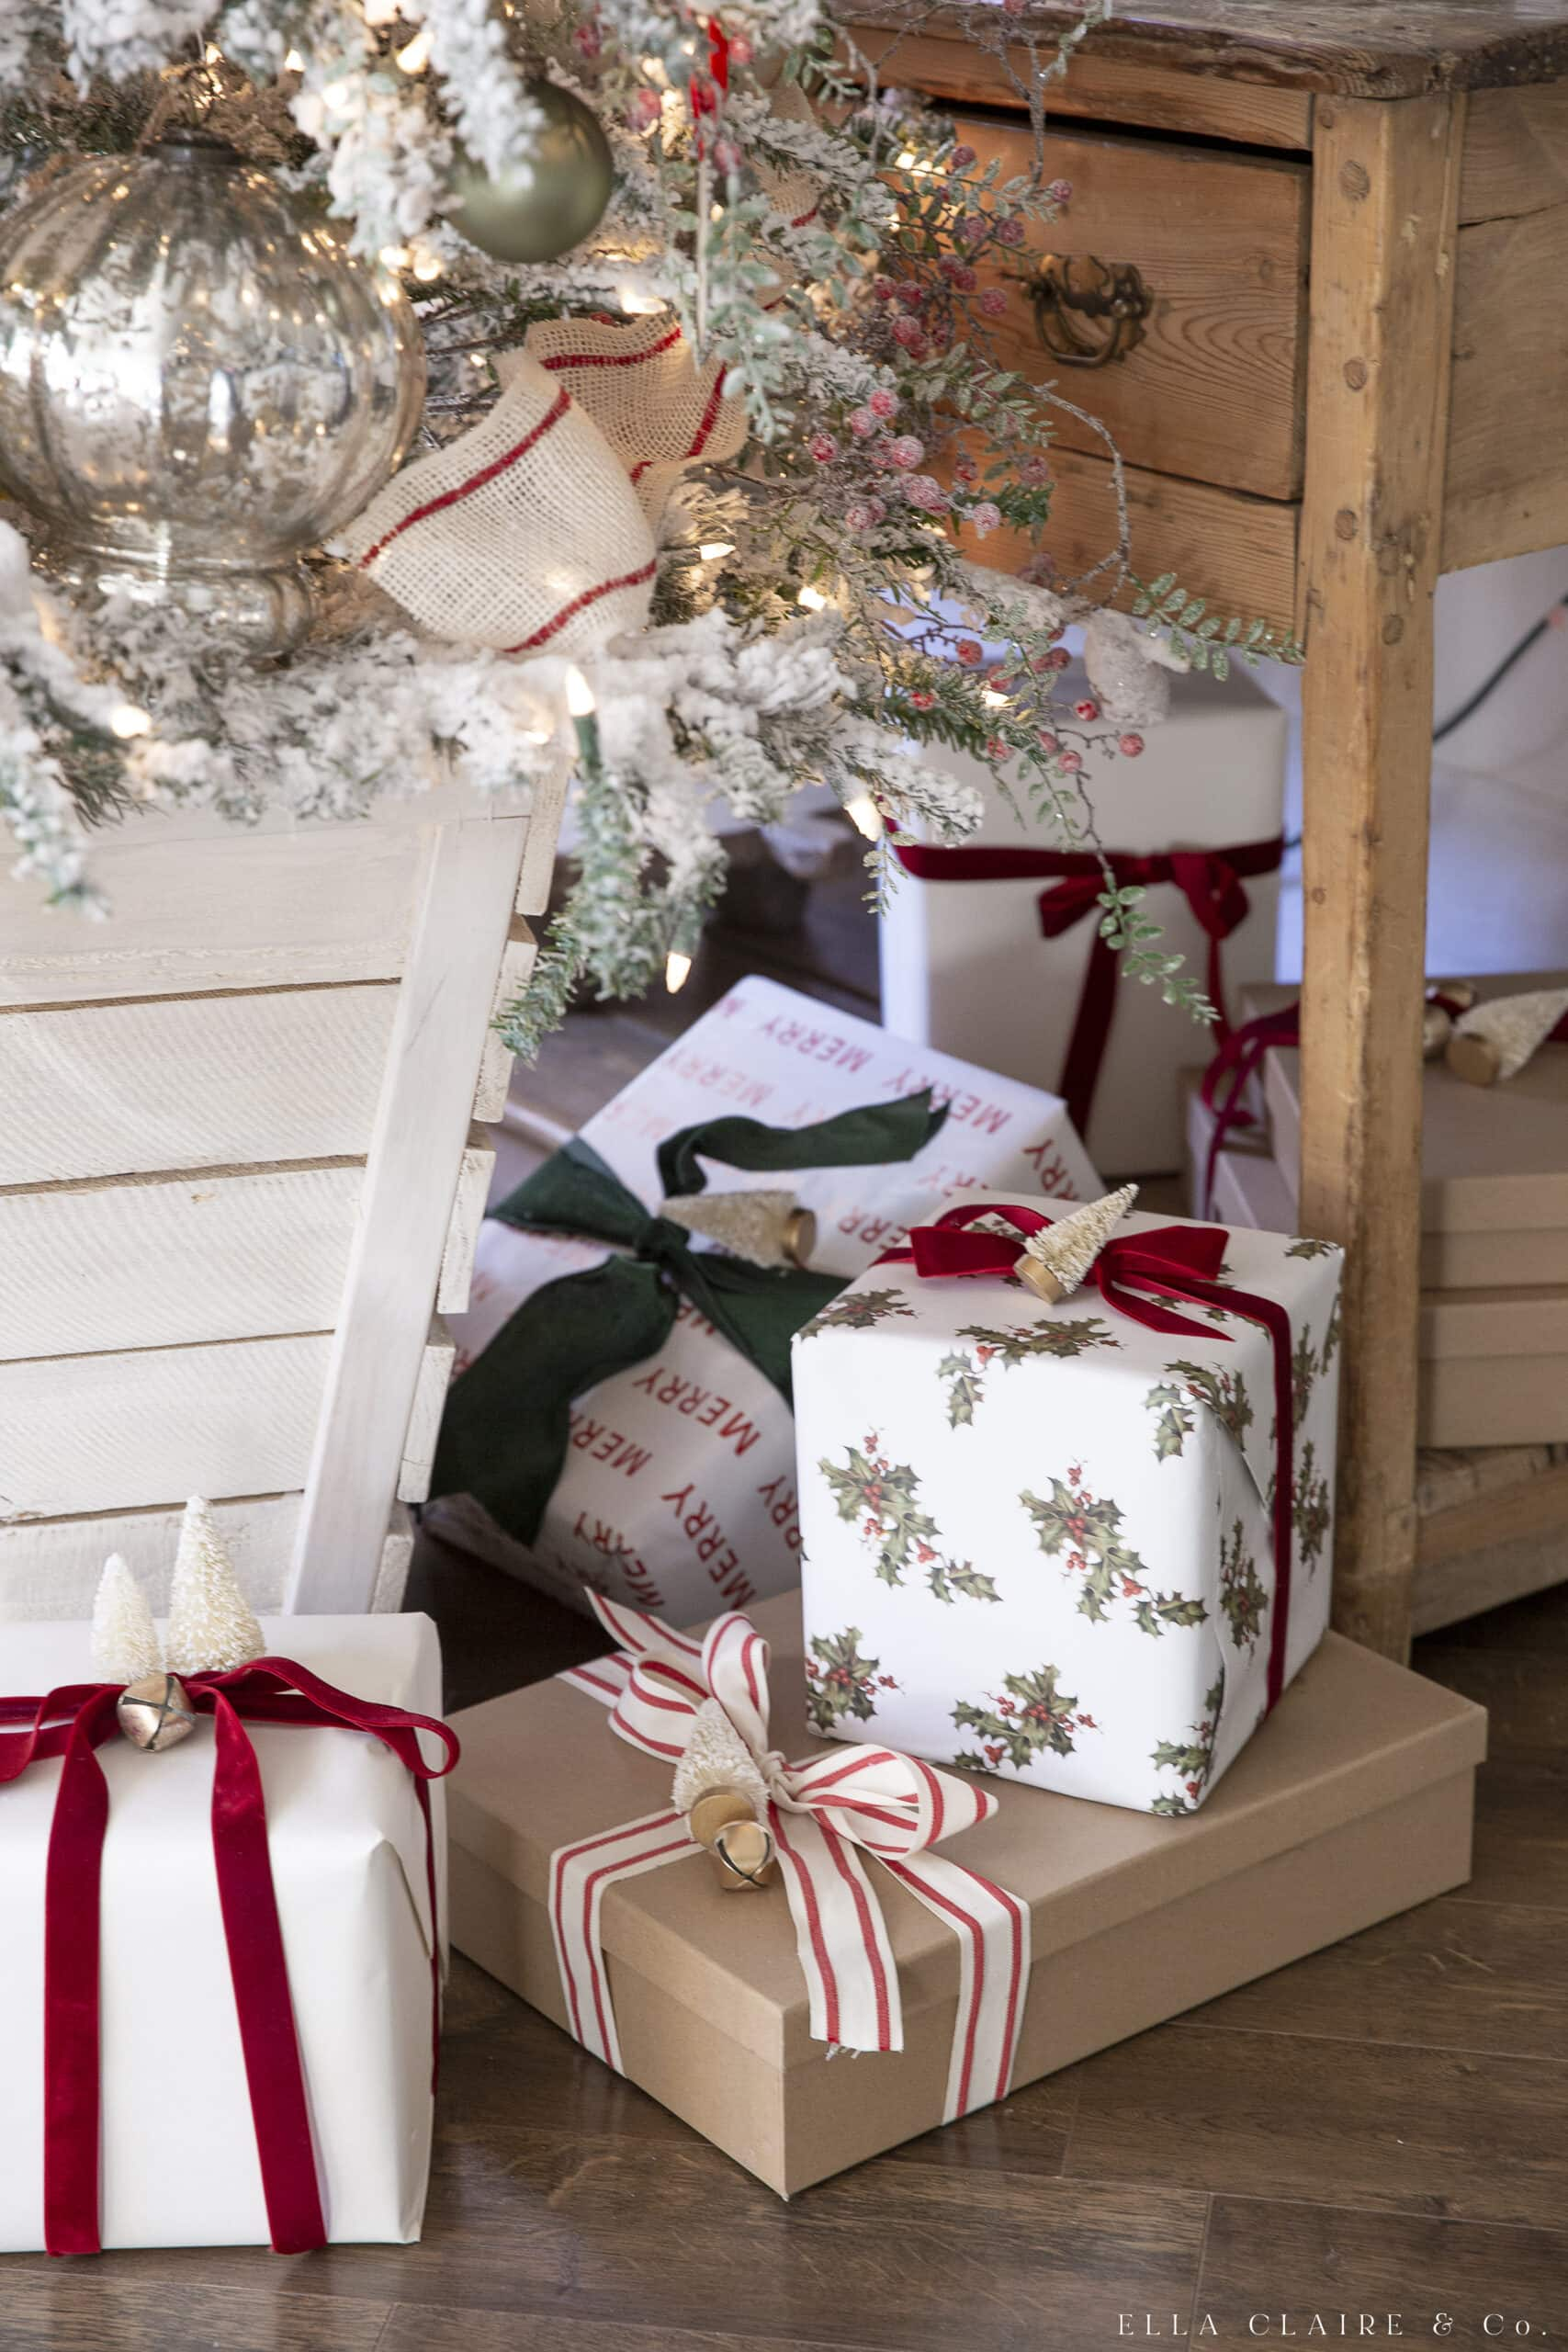 christmas gifts wrapped in red and green colors